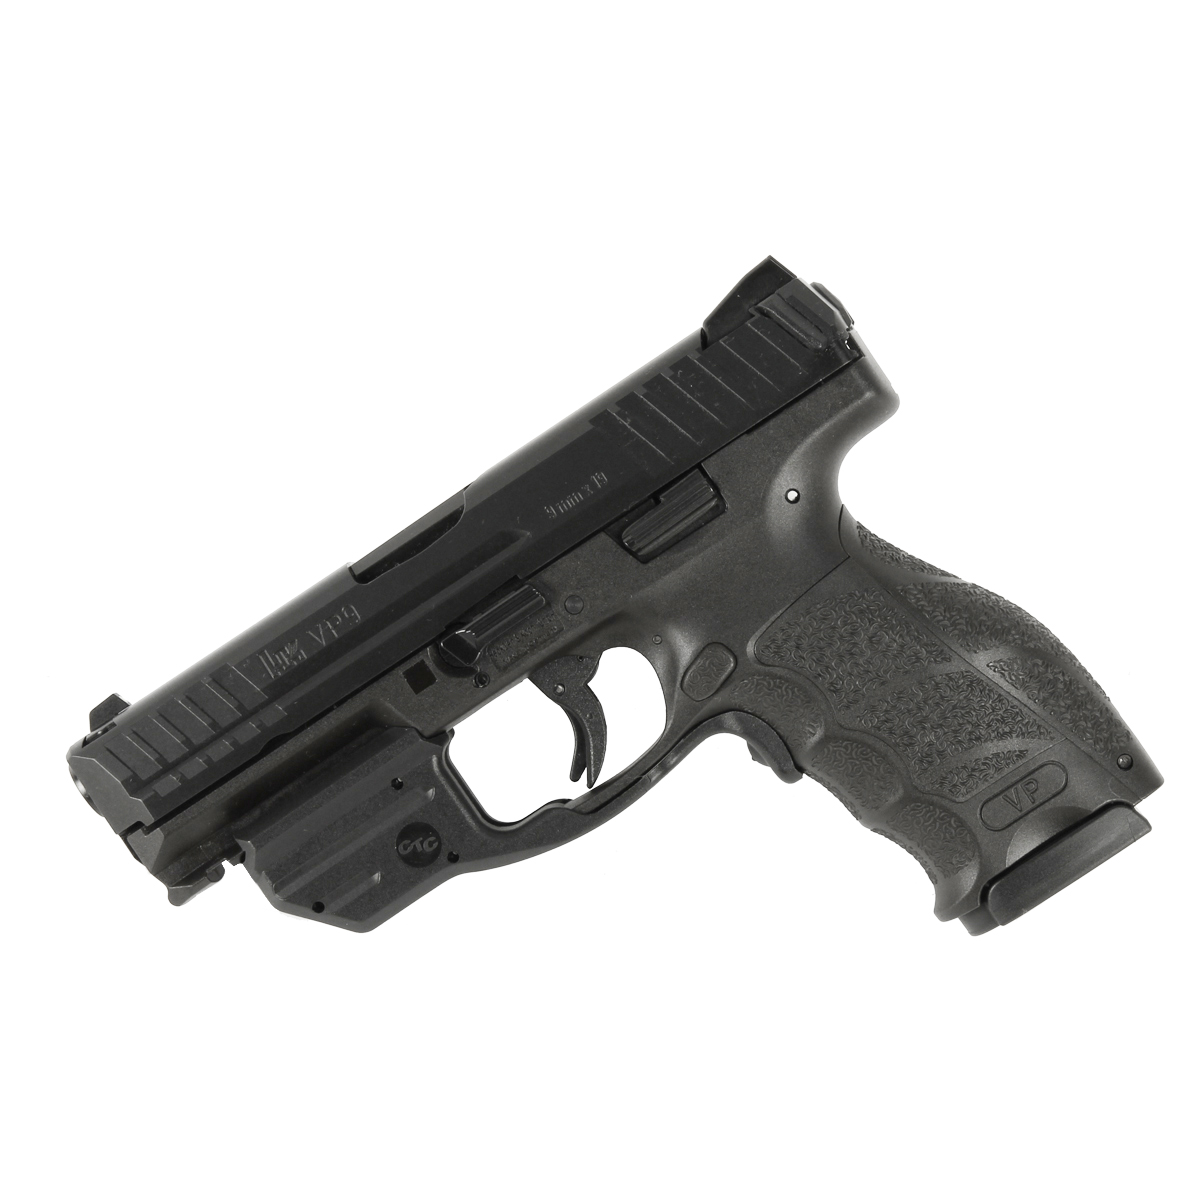 H&K VP9-B, Striker Fired, Fixed Sights, 9mm - Black - Red Laser